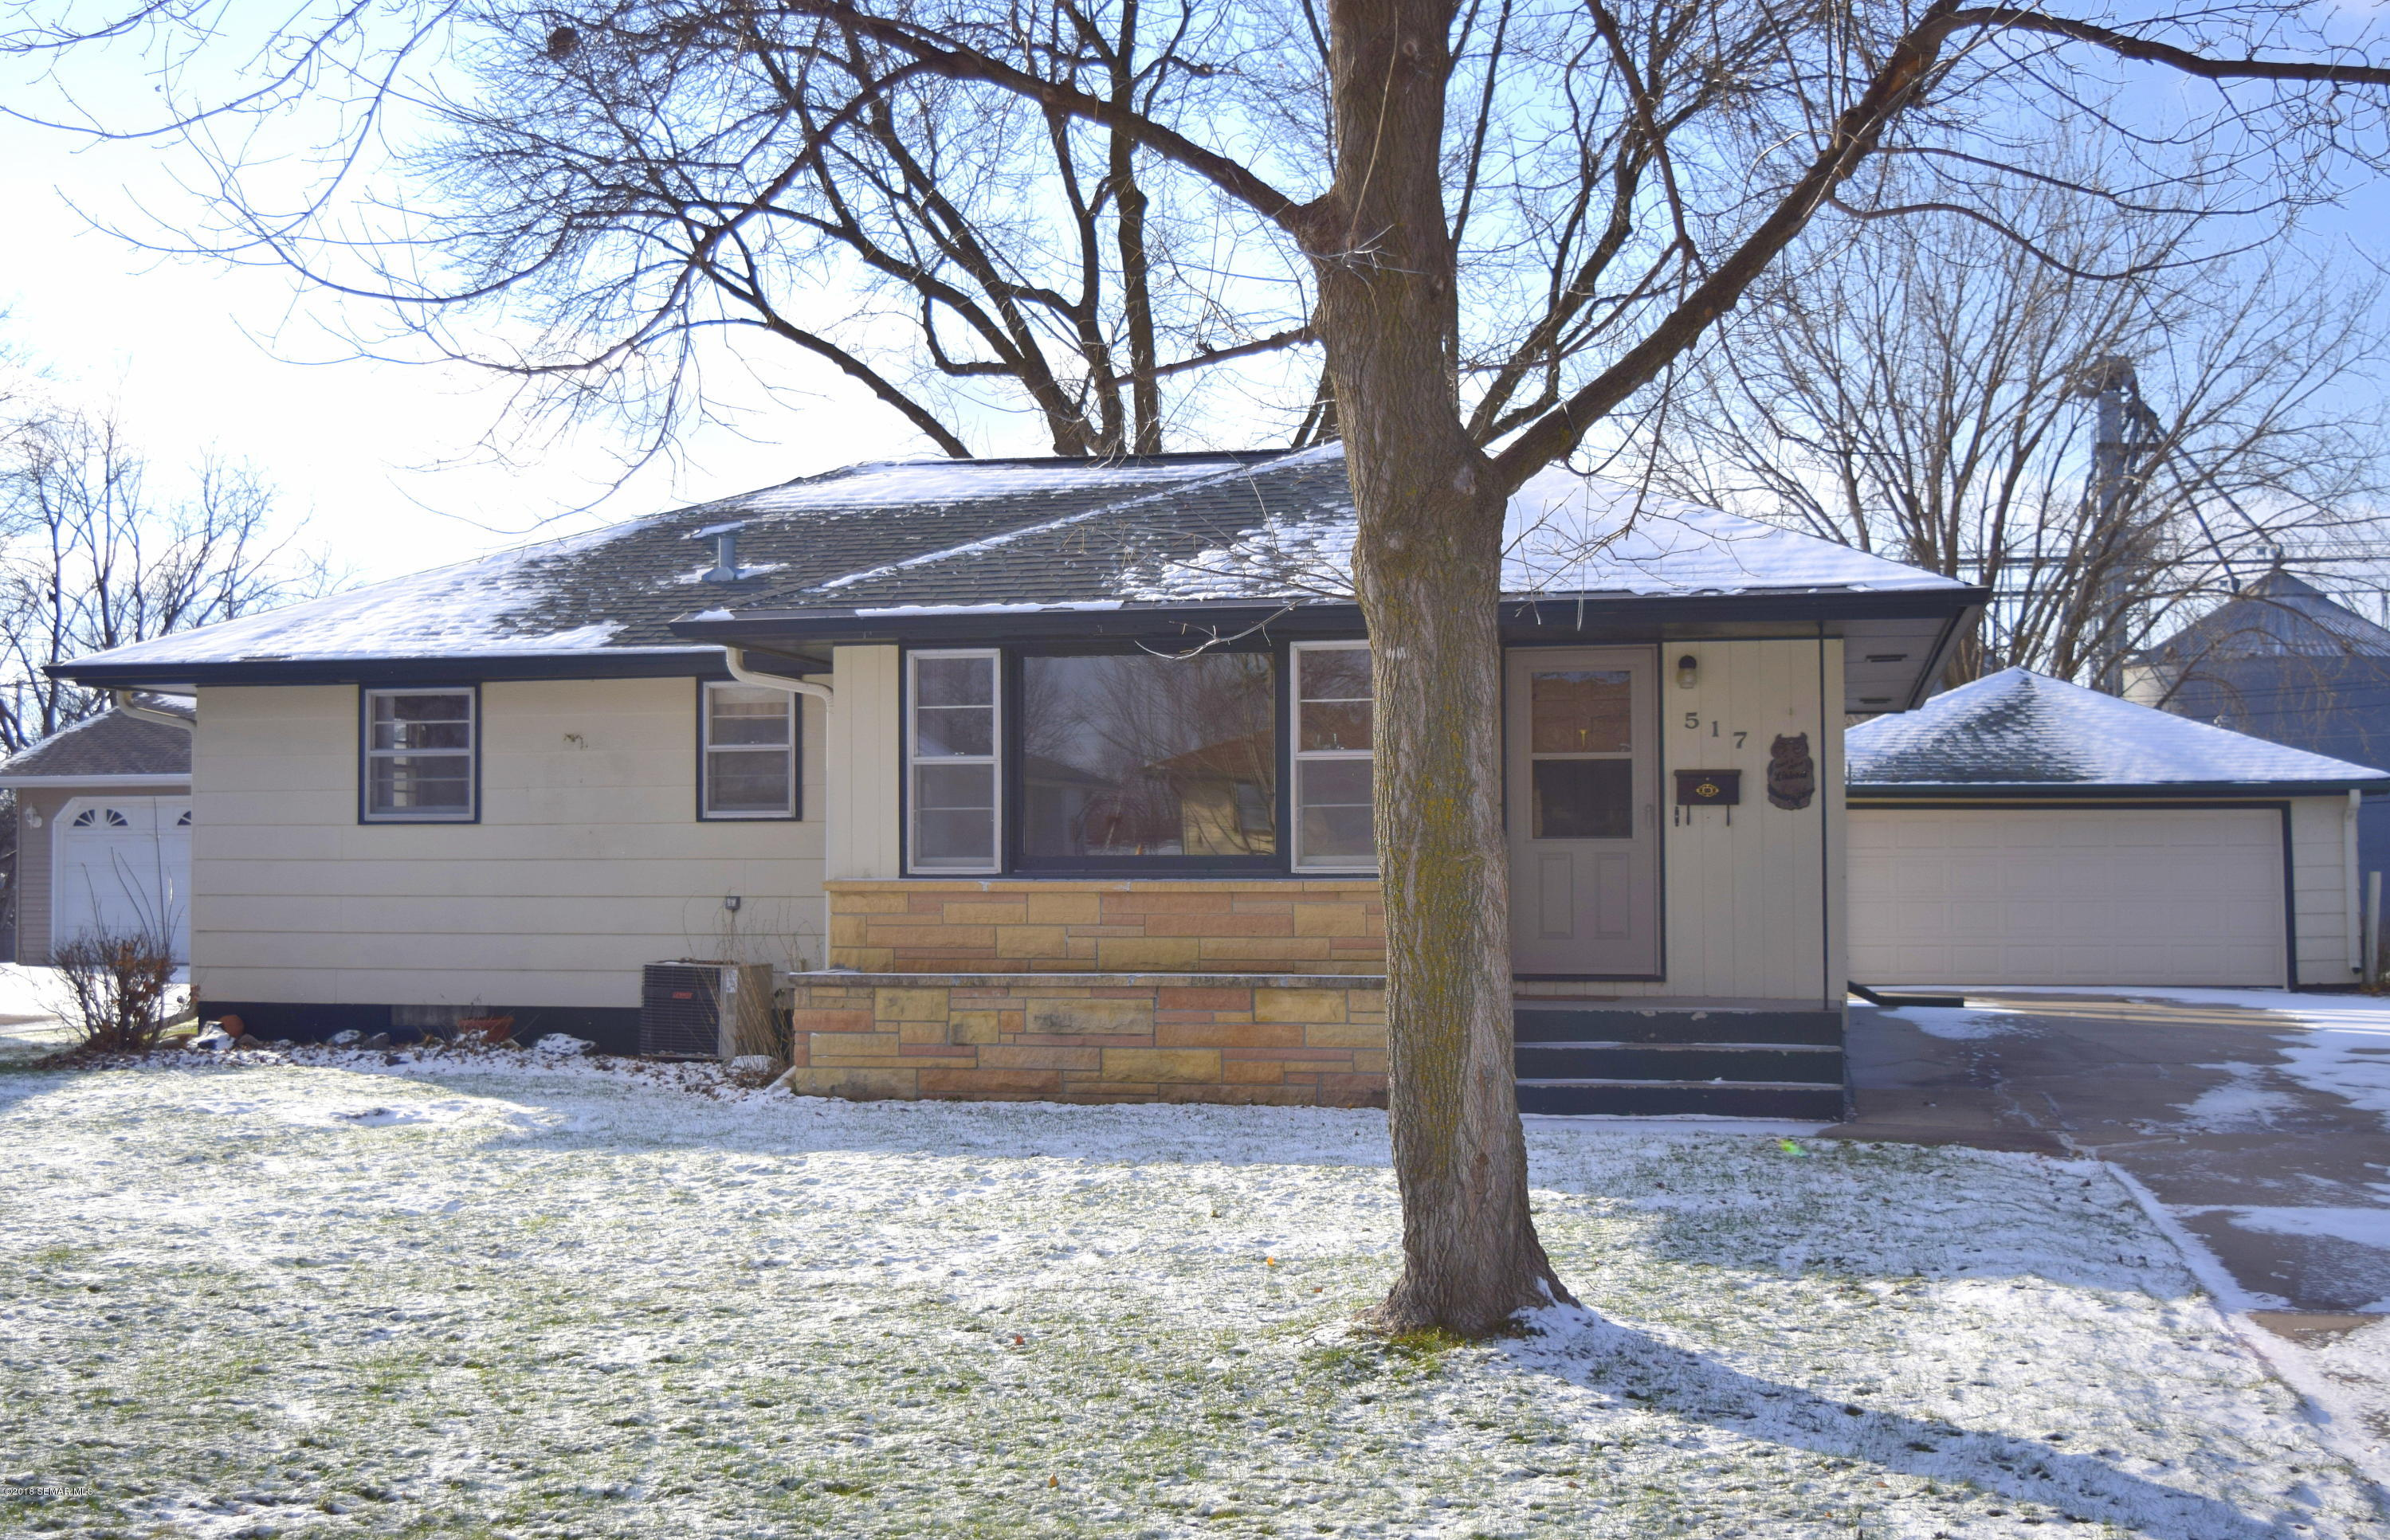 517 4th,Stewartville,Minnesota 55976,3 Bedrooms Bedrooms,2 BathroomsBathrooms,Single family residence,4th,4092437